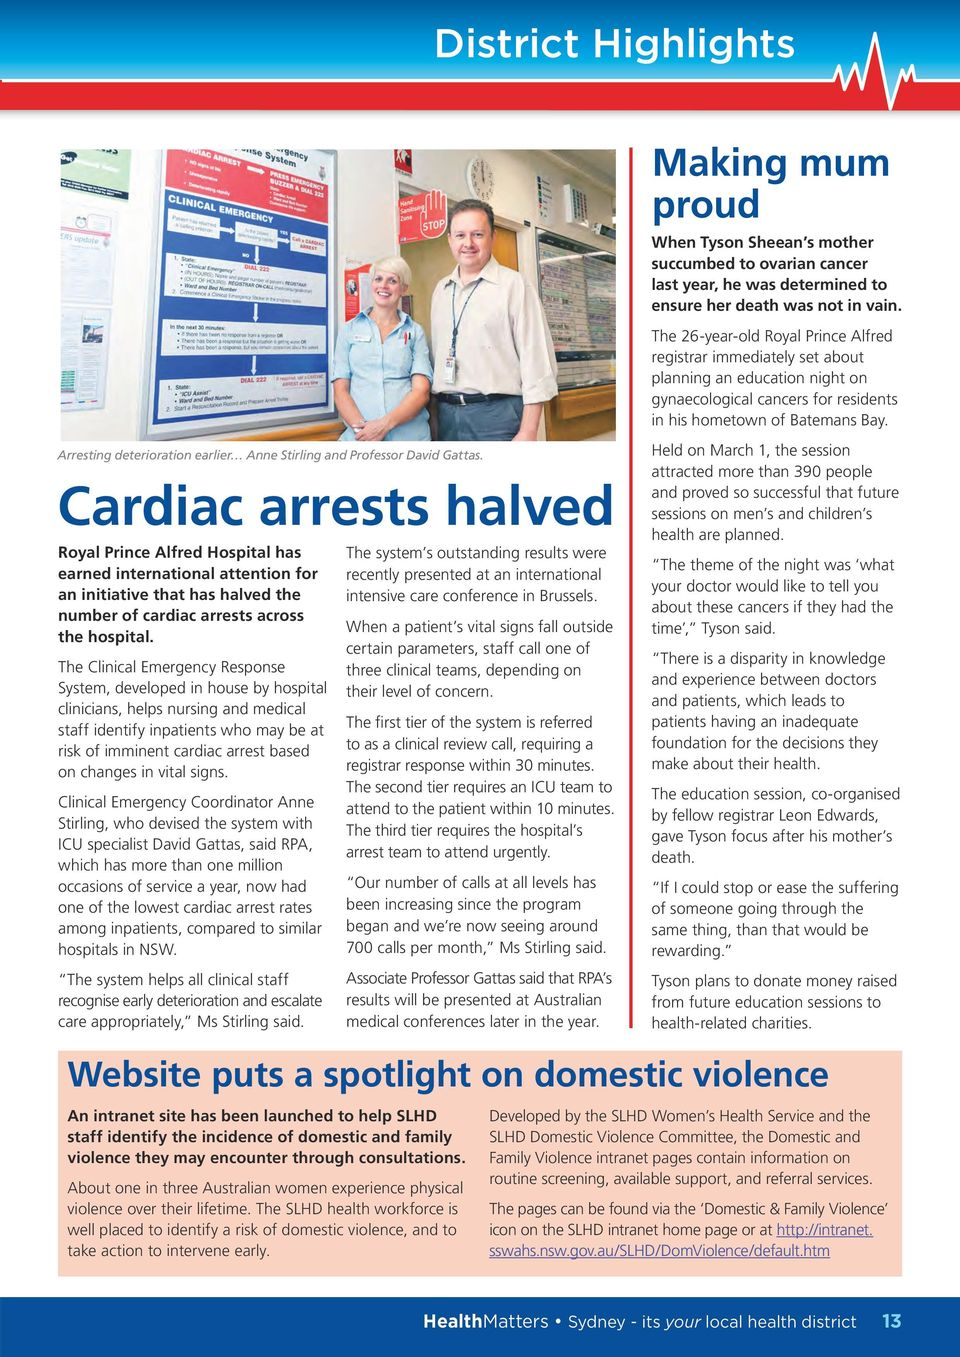 The Clinical Emergency Response System, developed in house by hospital clinicians, helps nursing and medical staff identify inpatients who may be at risk of imminent cardiac arrest based on changes